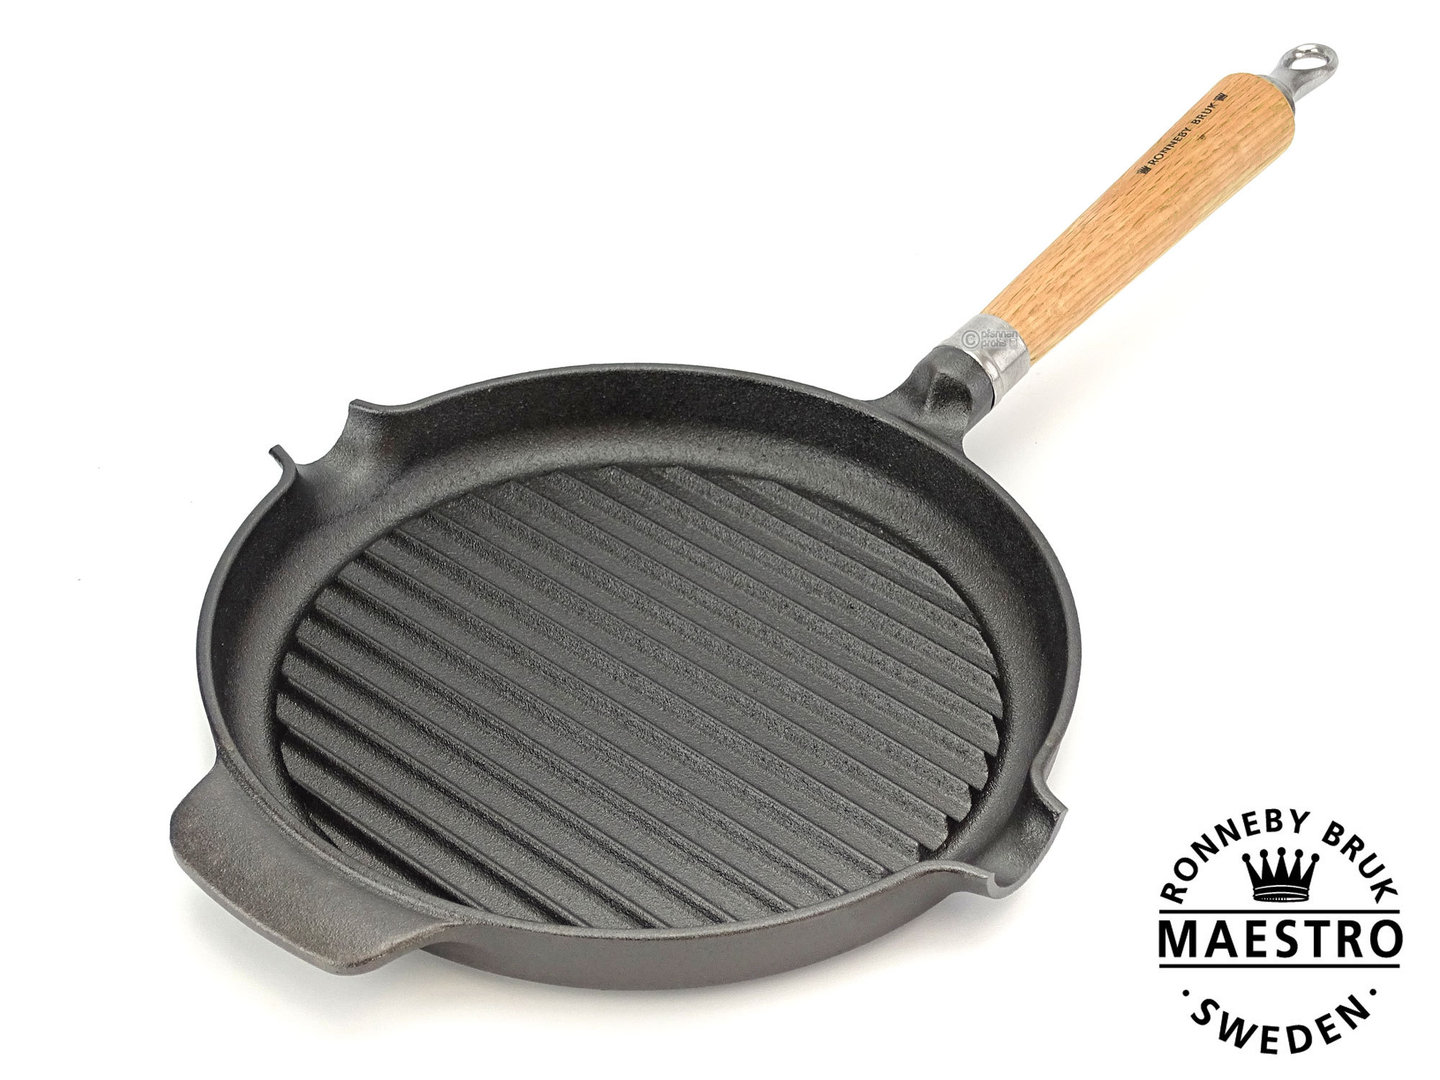 RONNEBY BRUK cast iron grill pan MAESTRO 24 cm oakwood handle, pre-seasoned